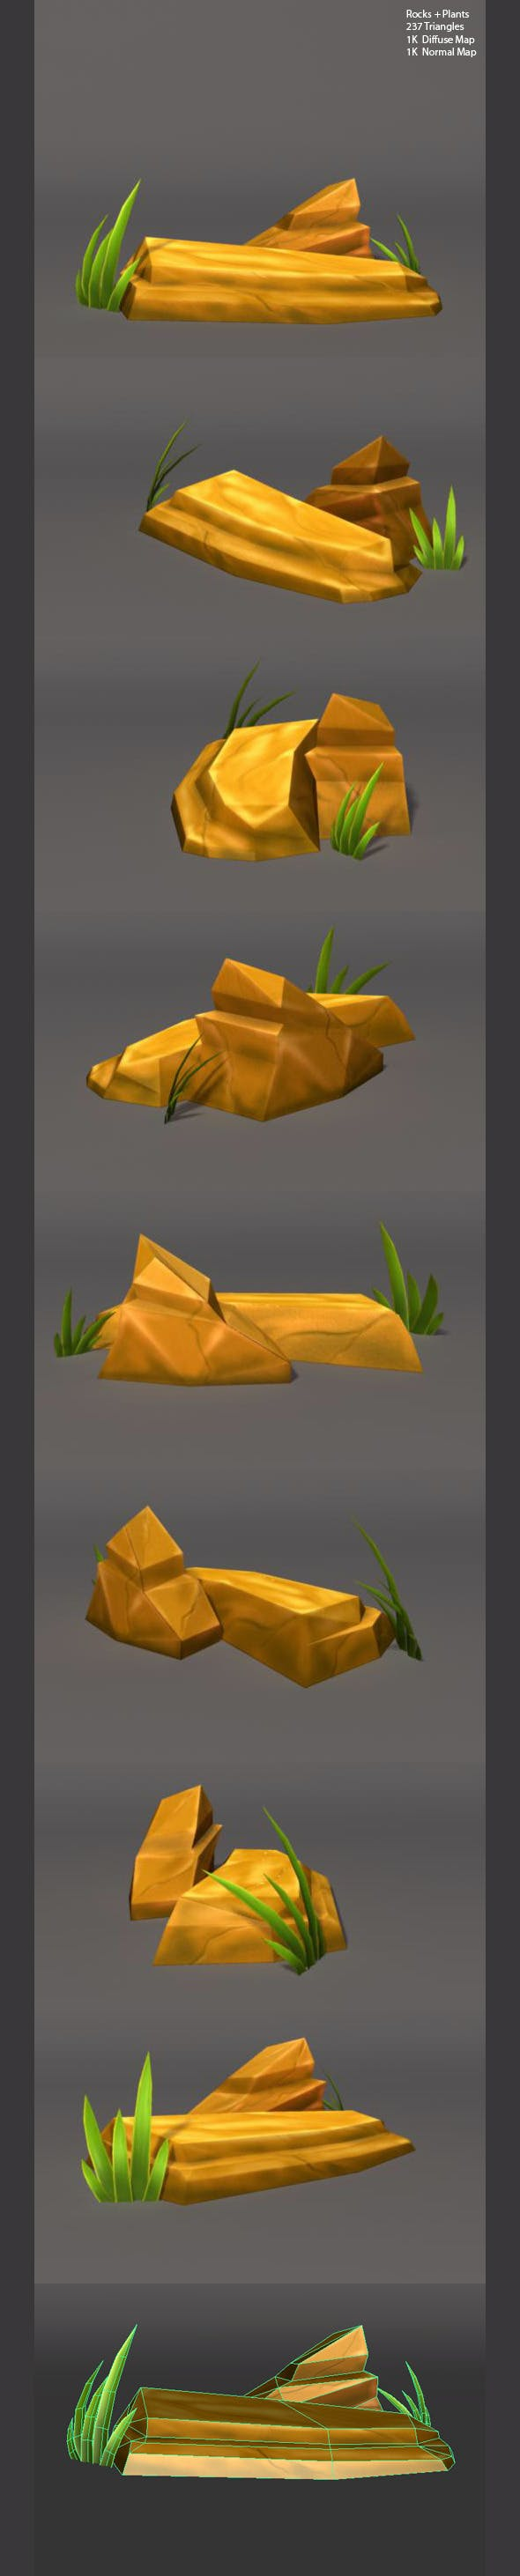 Low Poly Rocks and Plants - 3DOcean Item for Sale